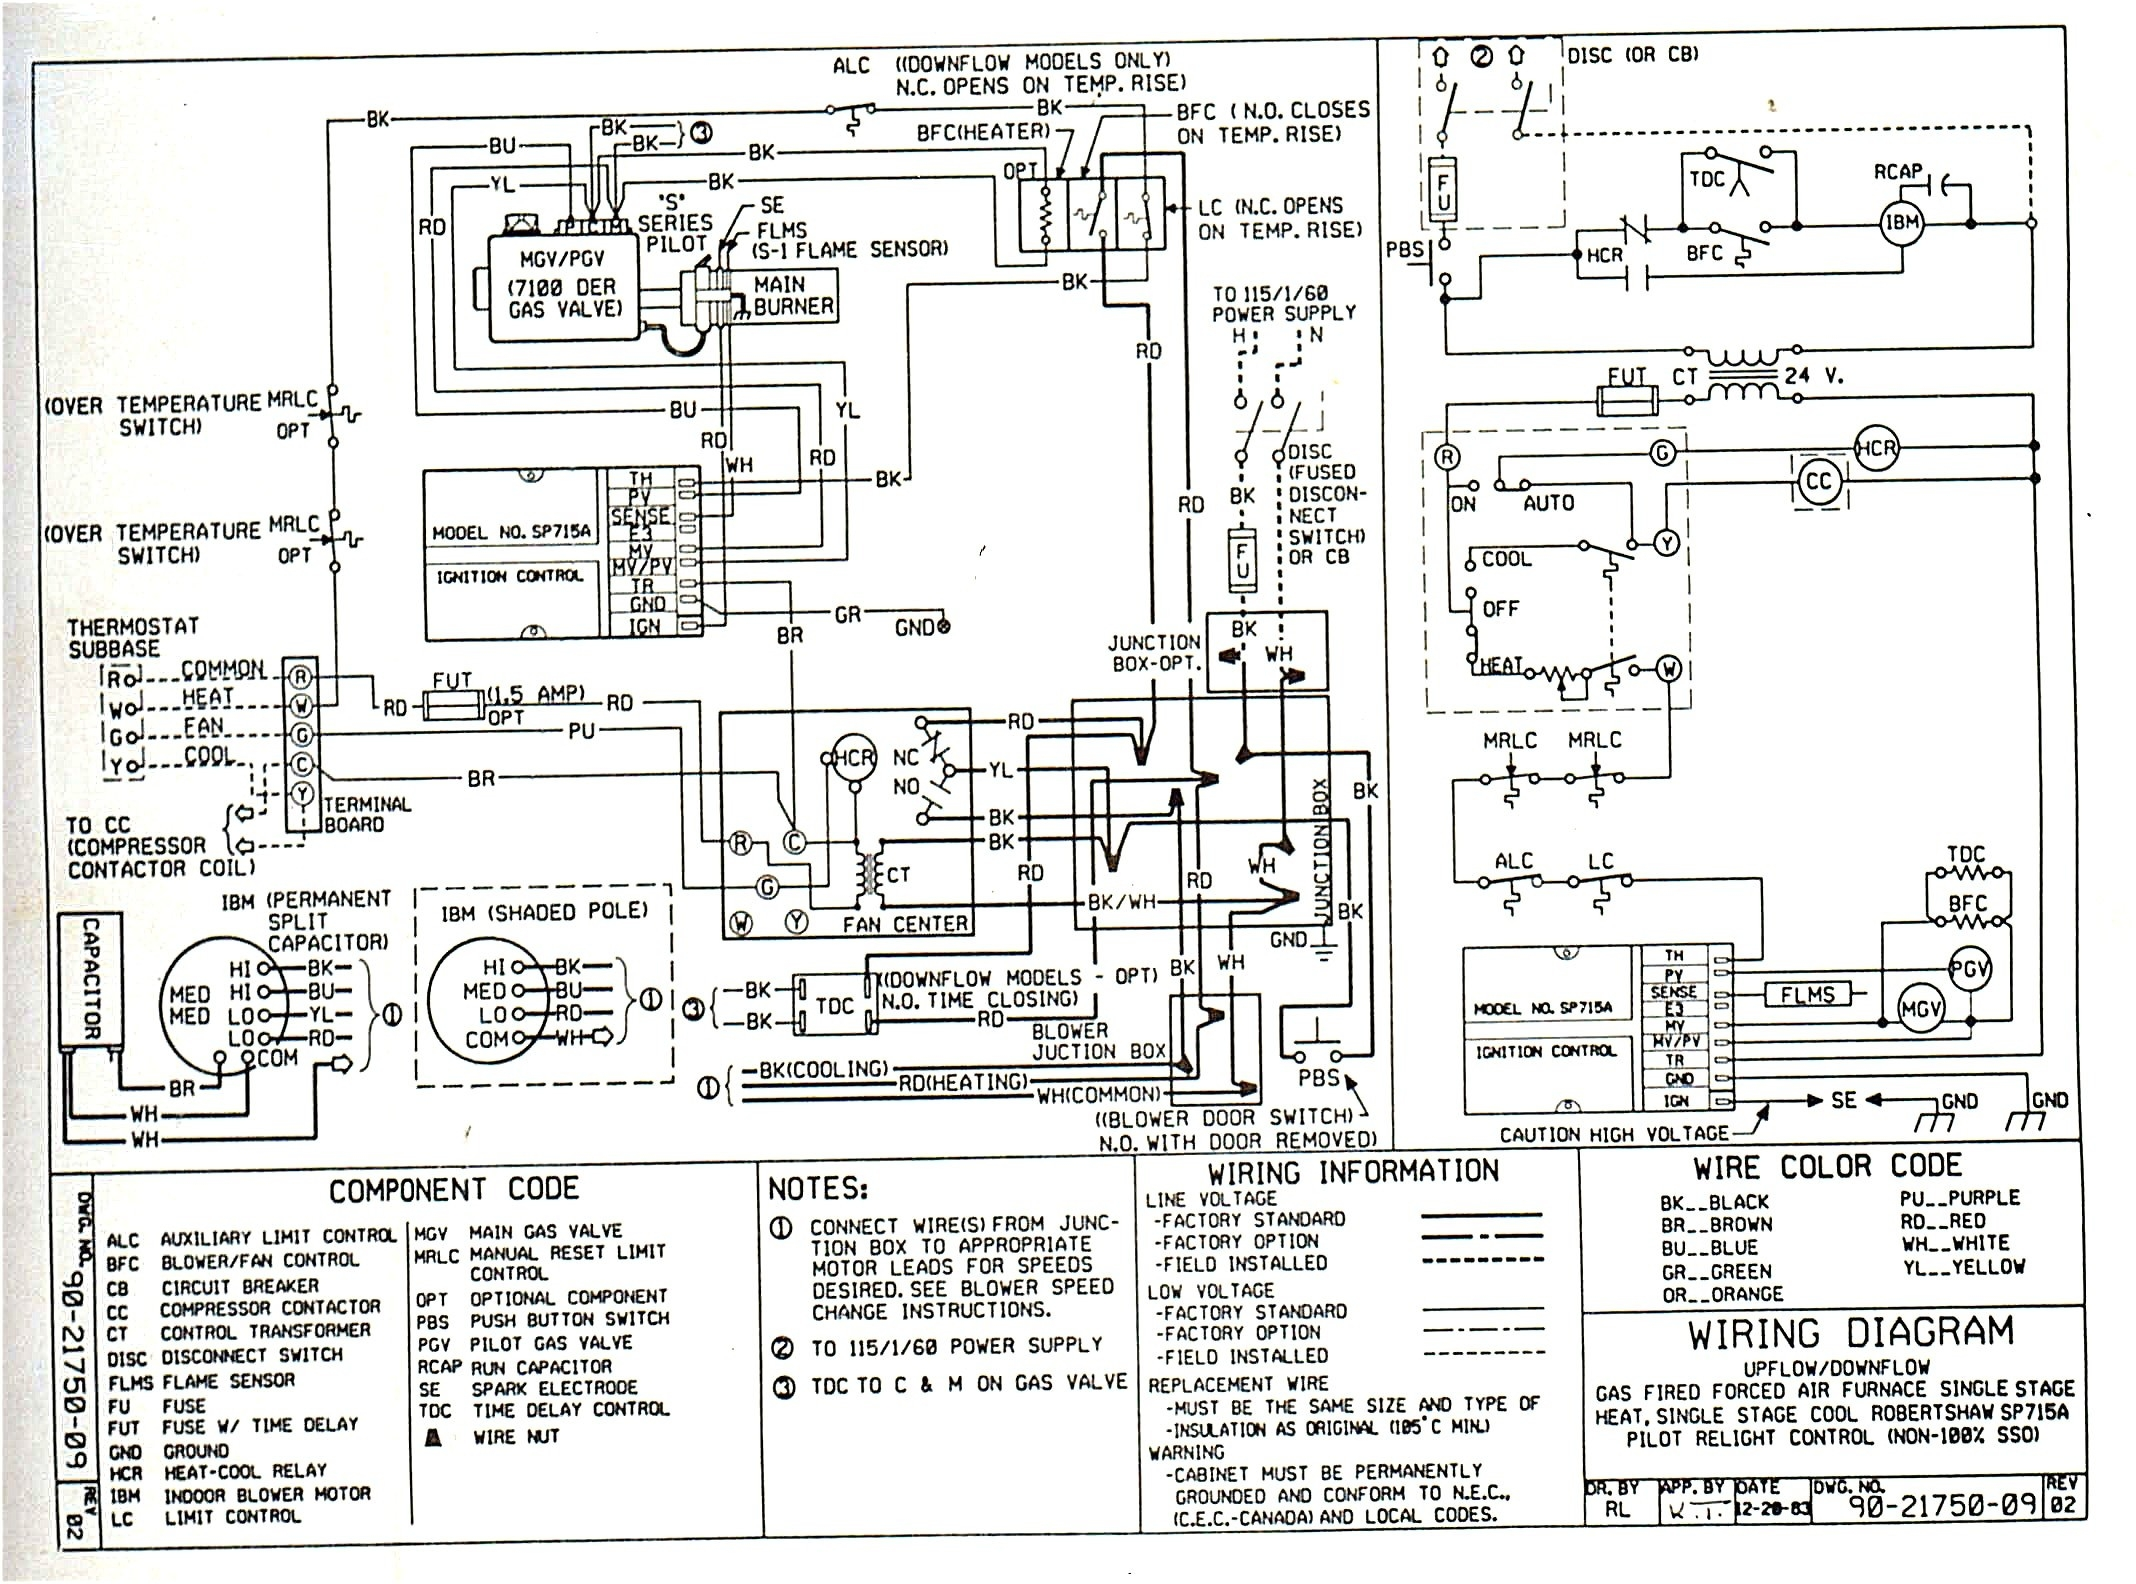 Furnace Schematic